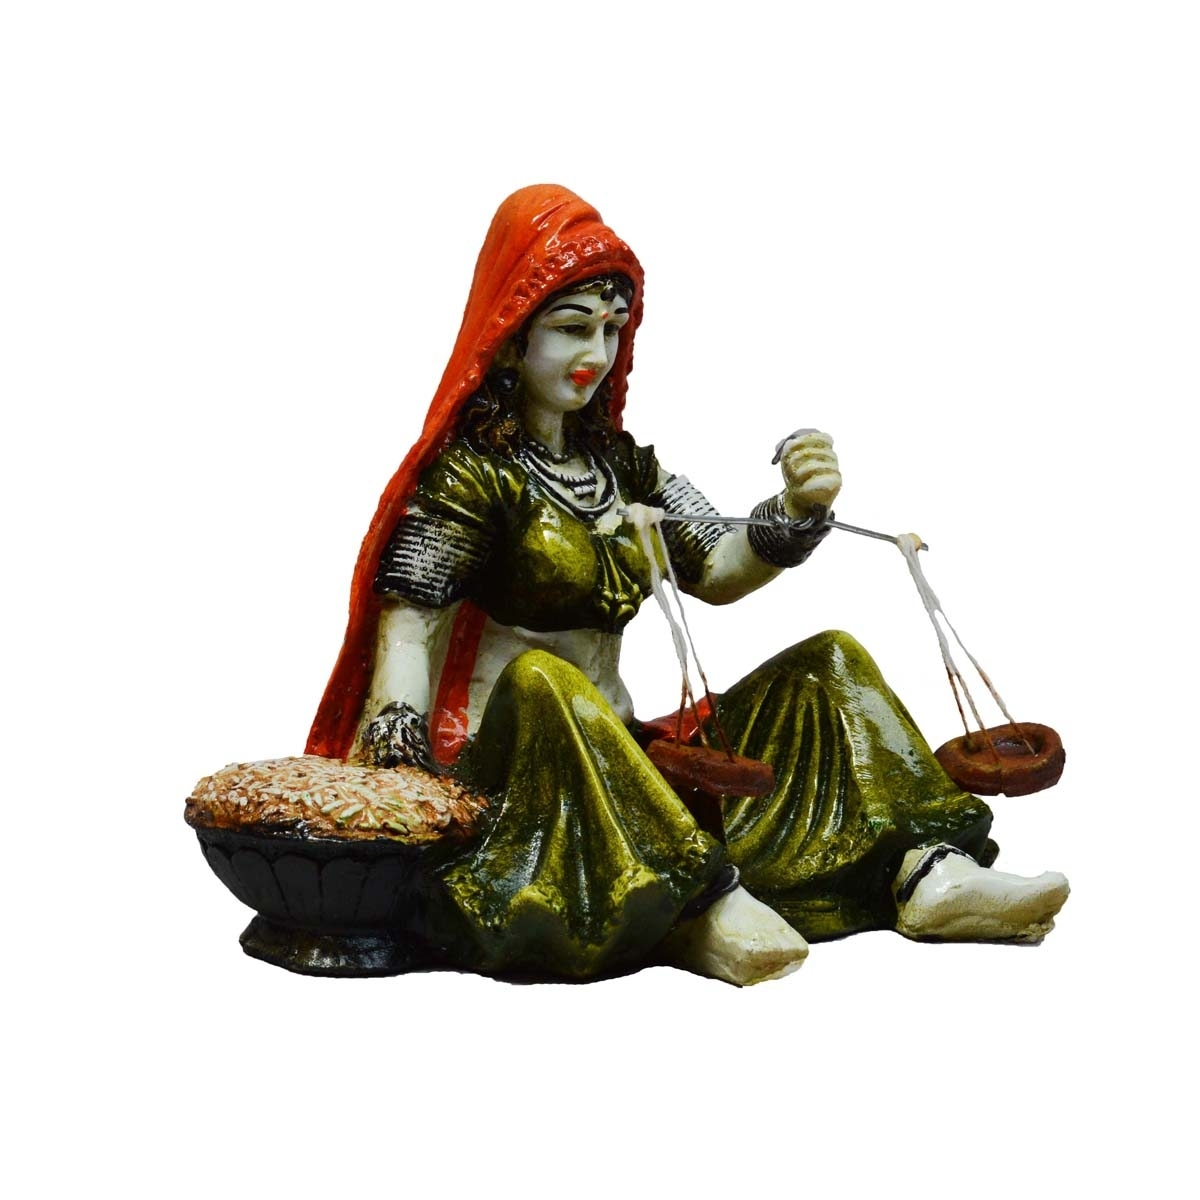 Rajasthani Lady Statue with Weighing Scale Indian Home Decor